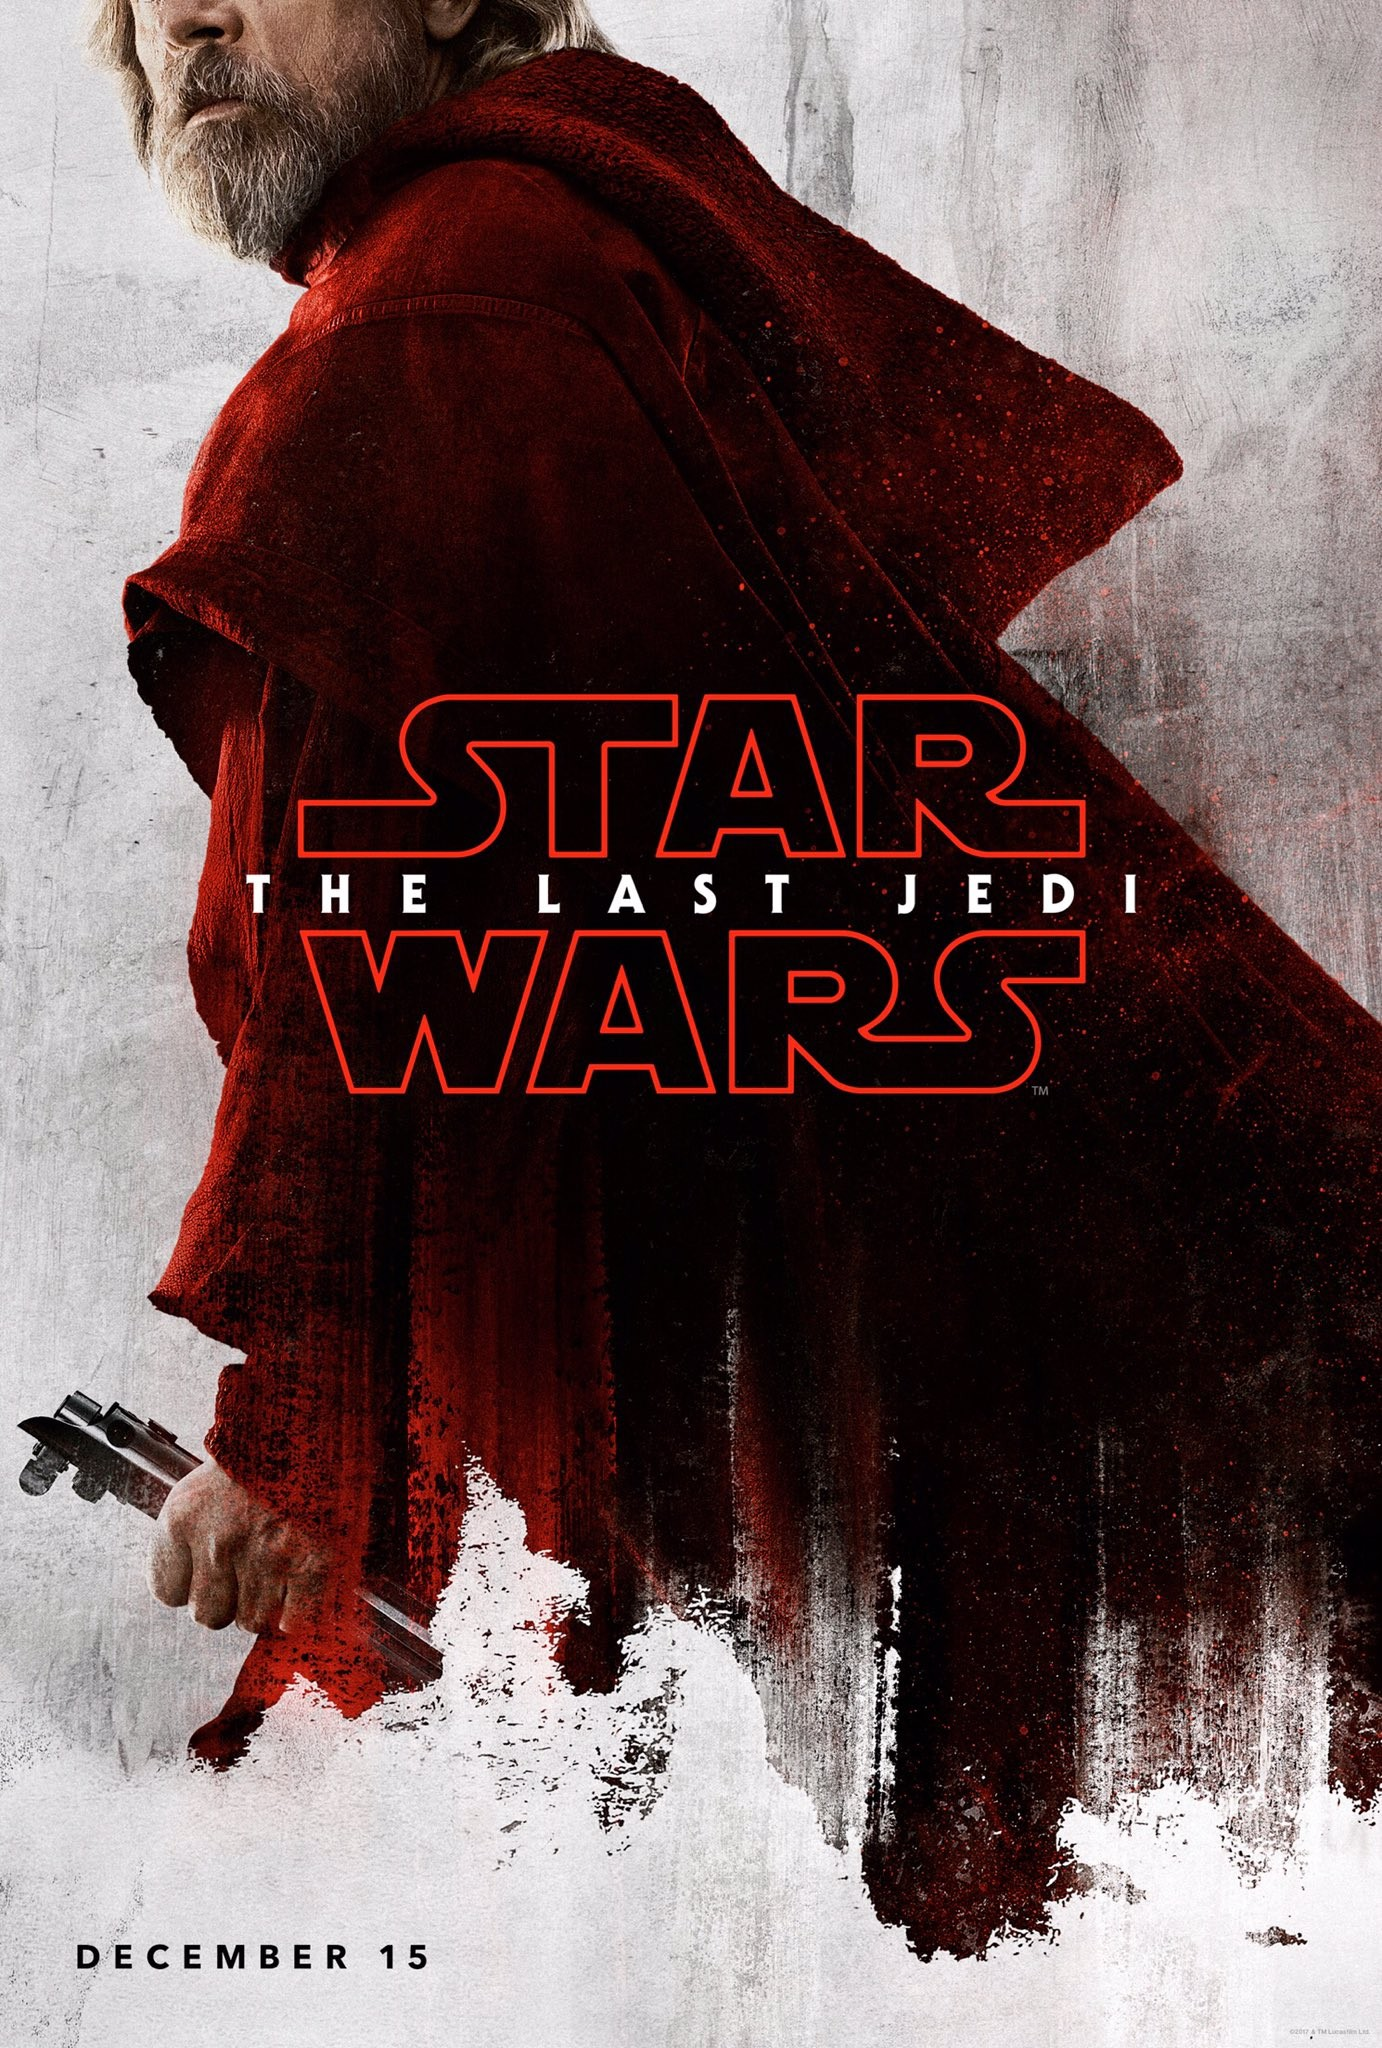 http://www.starwars-universe.com/images/actualites/episode8/affiches/04.jpg